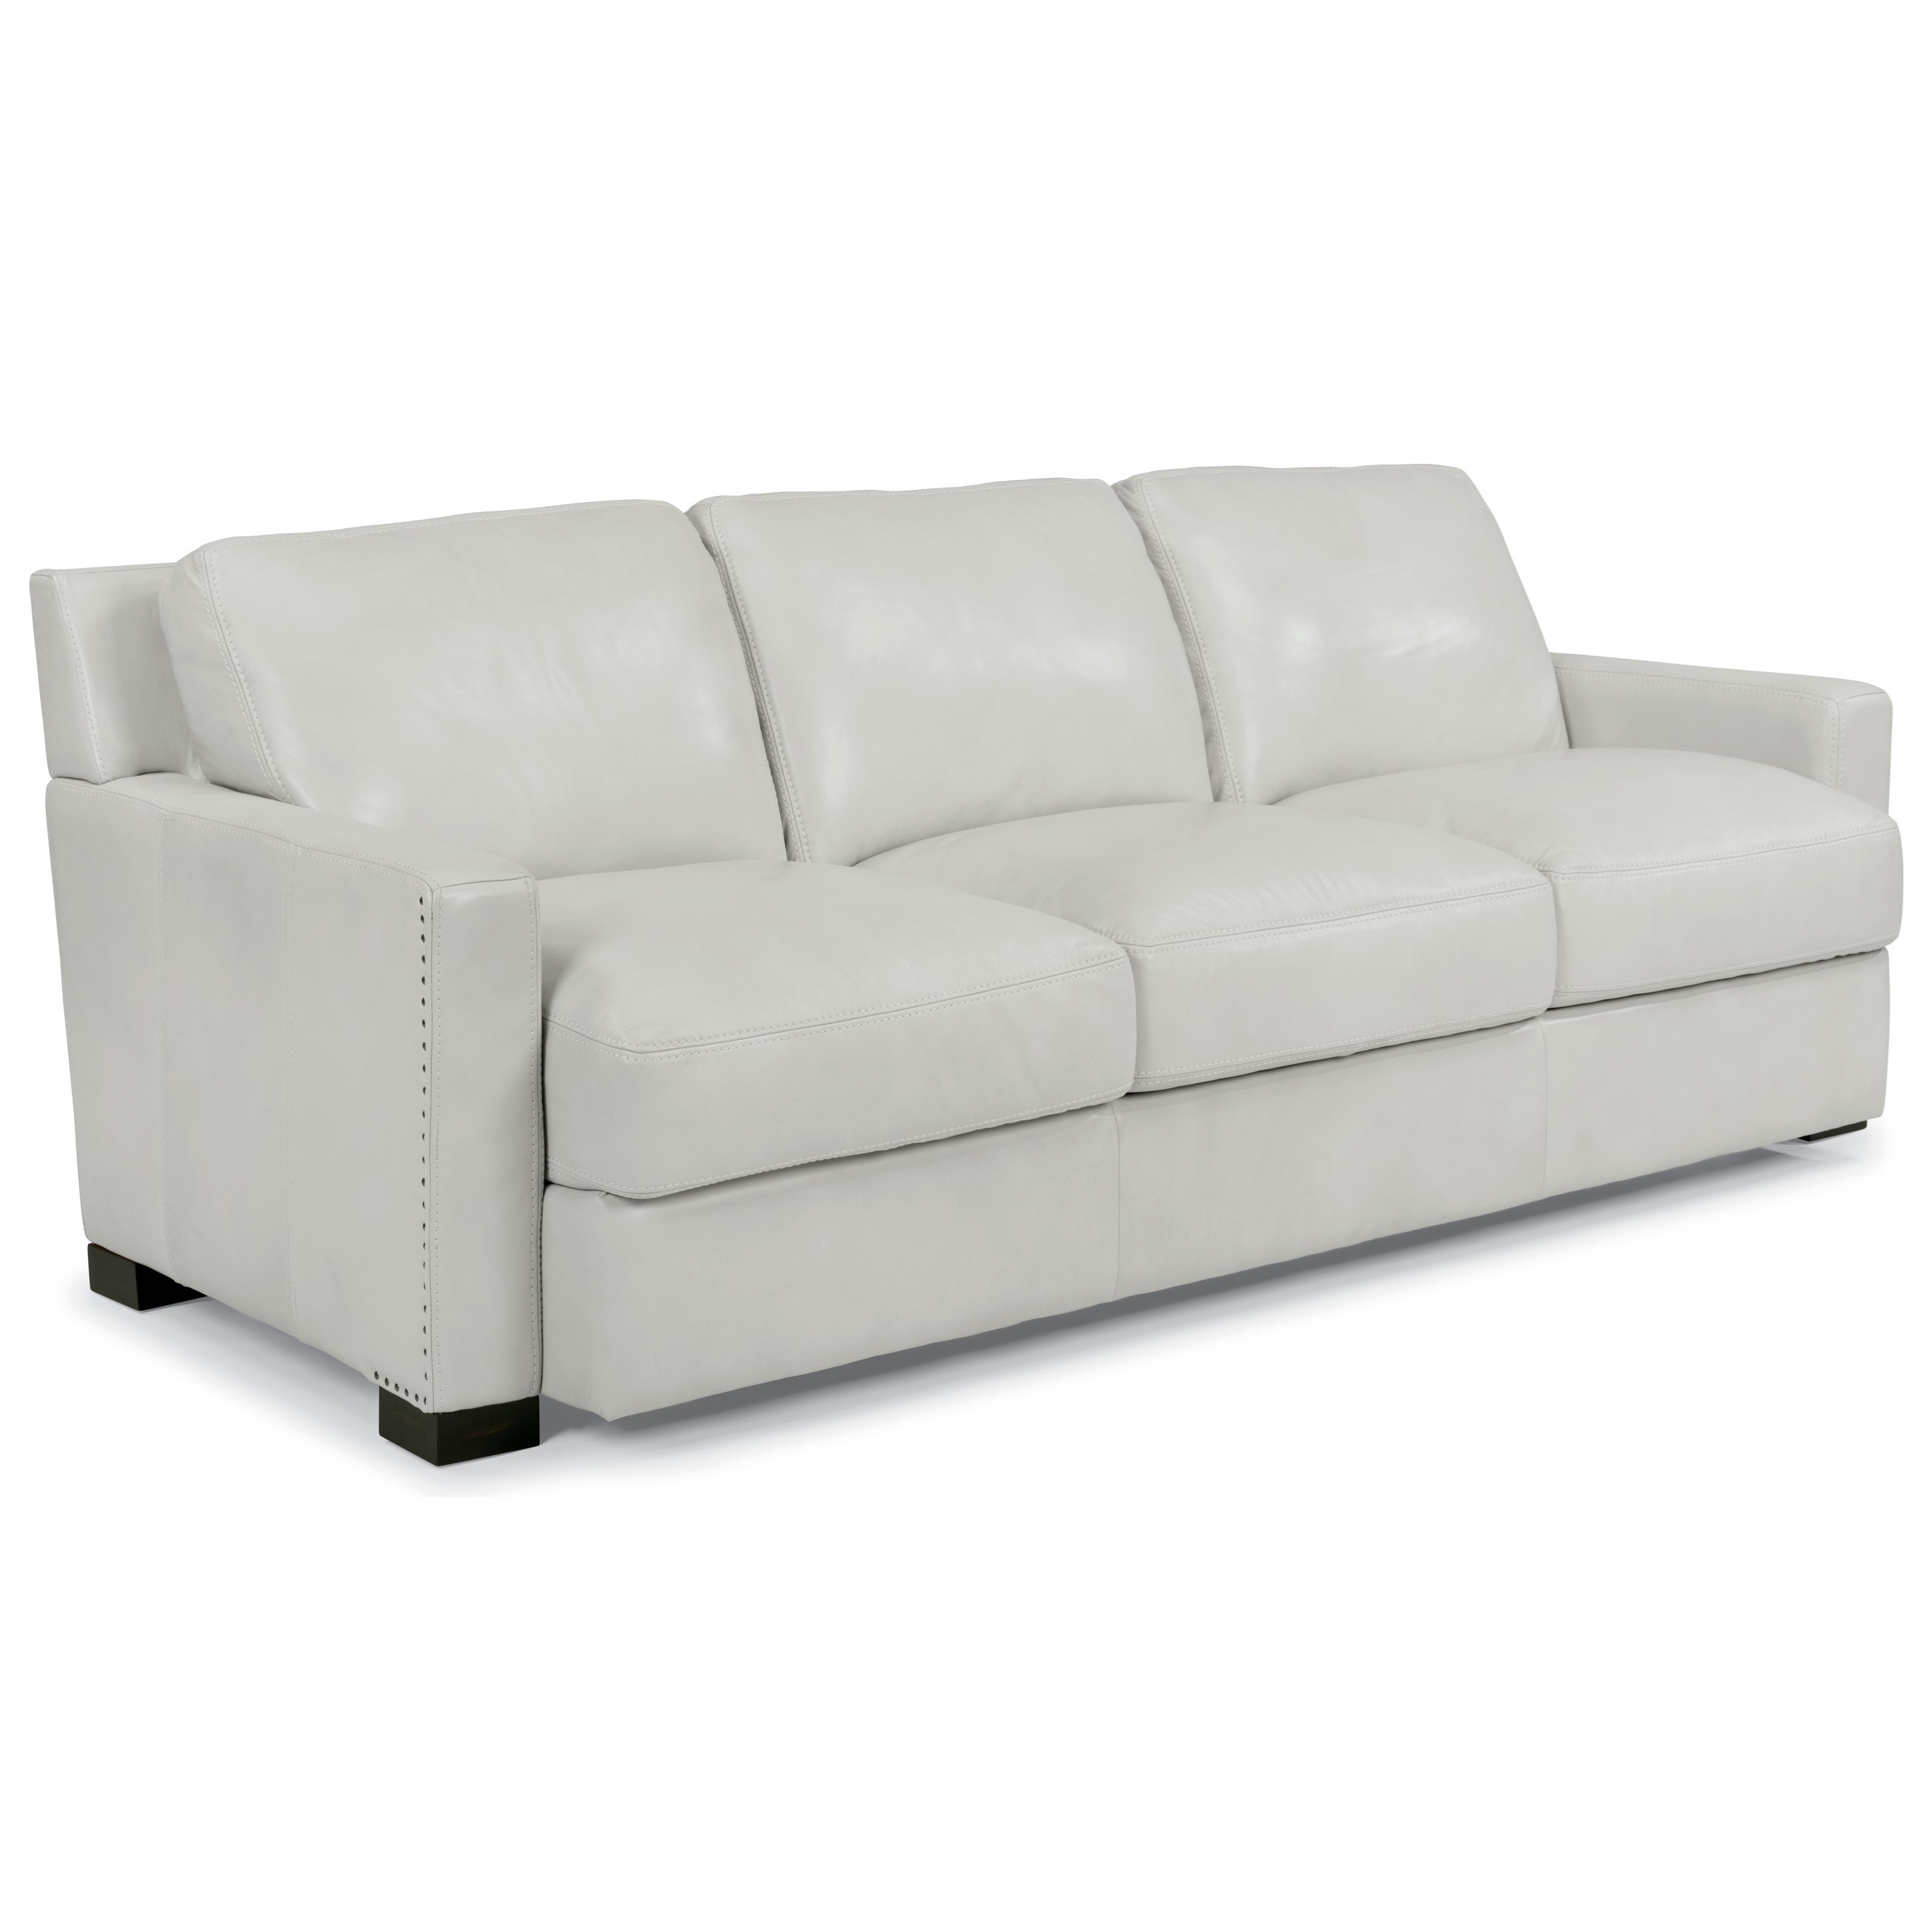 Flexsteel Sofa Locations: Flexsteel Latitudes-Blake 1369-31 Contemporary Sofa With